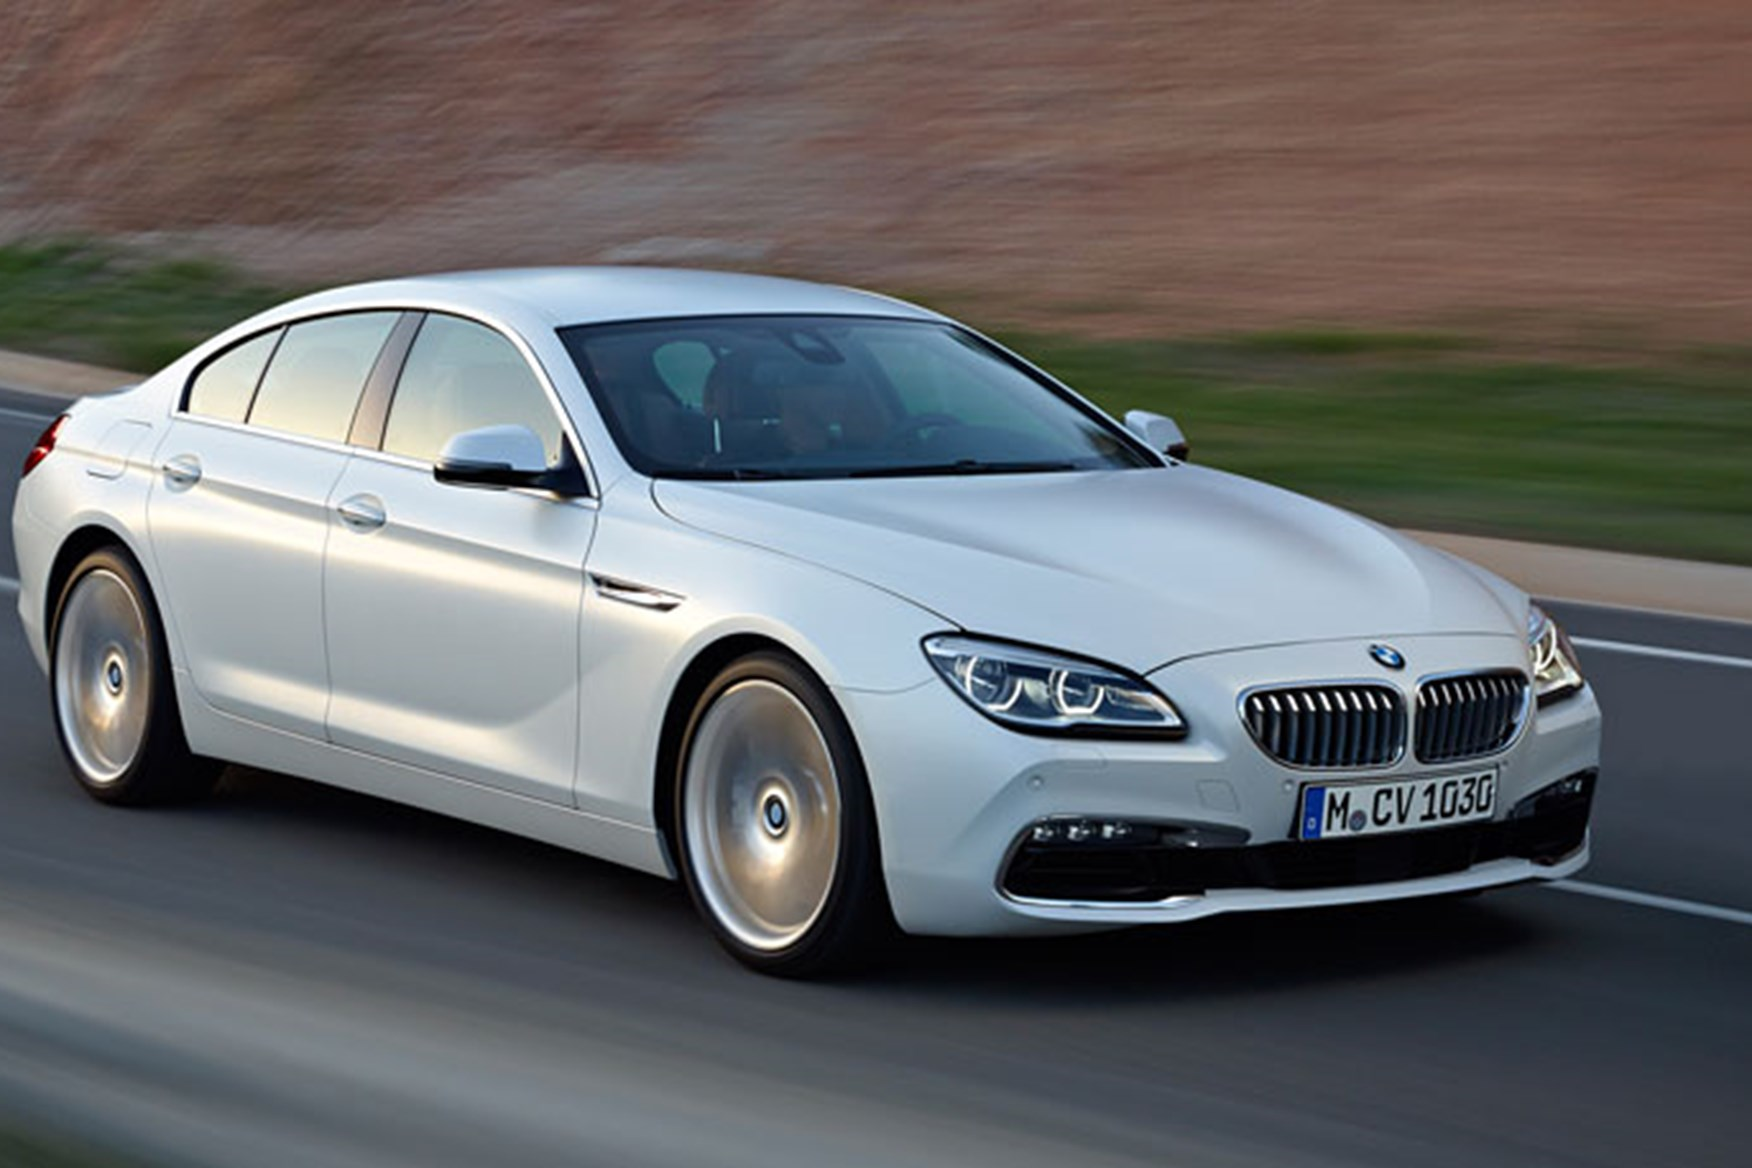 Superior ... Changes To The BMW 6 Series For 2015 Include A New Full Width Air  Intake Along The Front Bumper ...